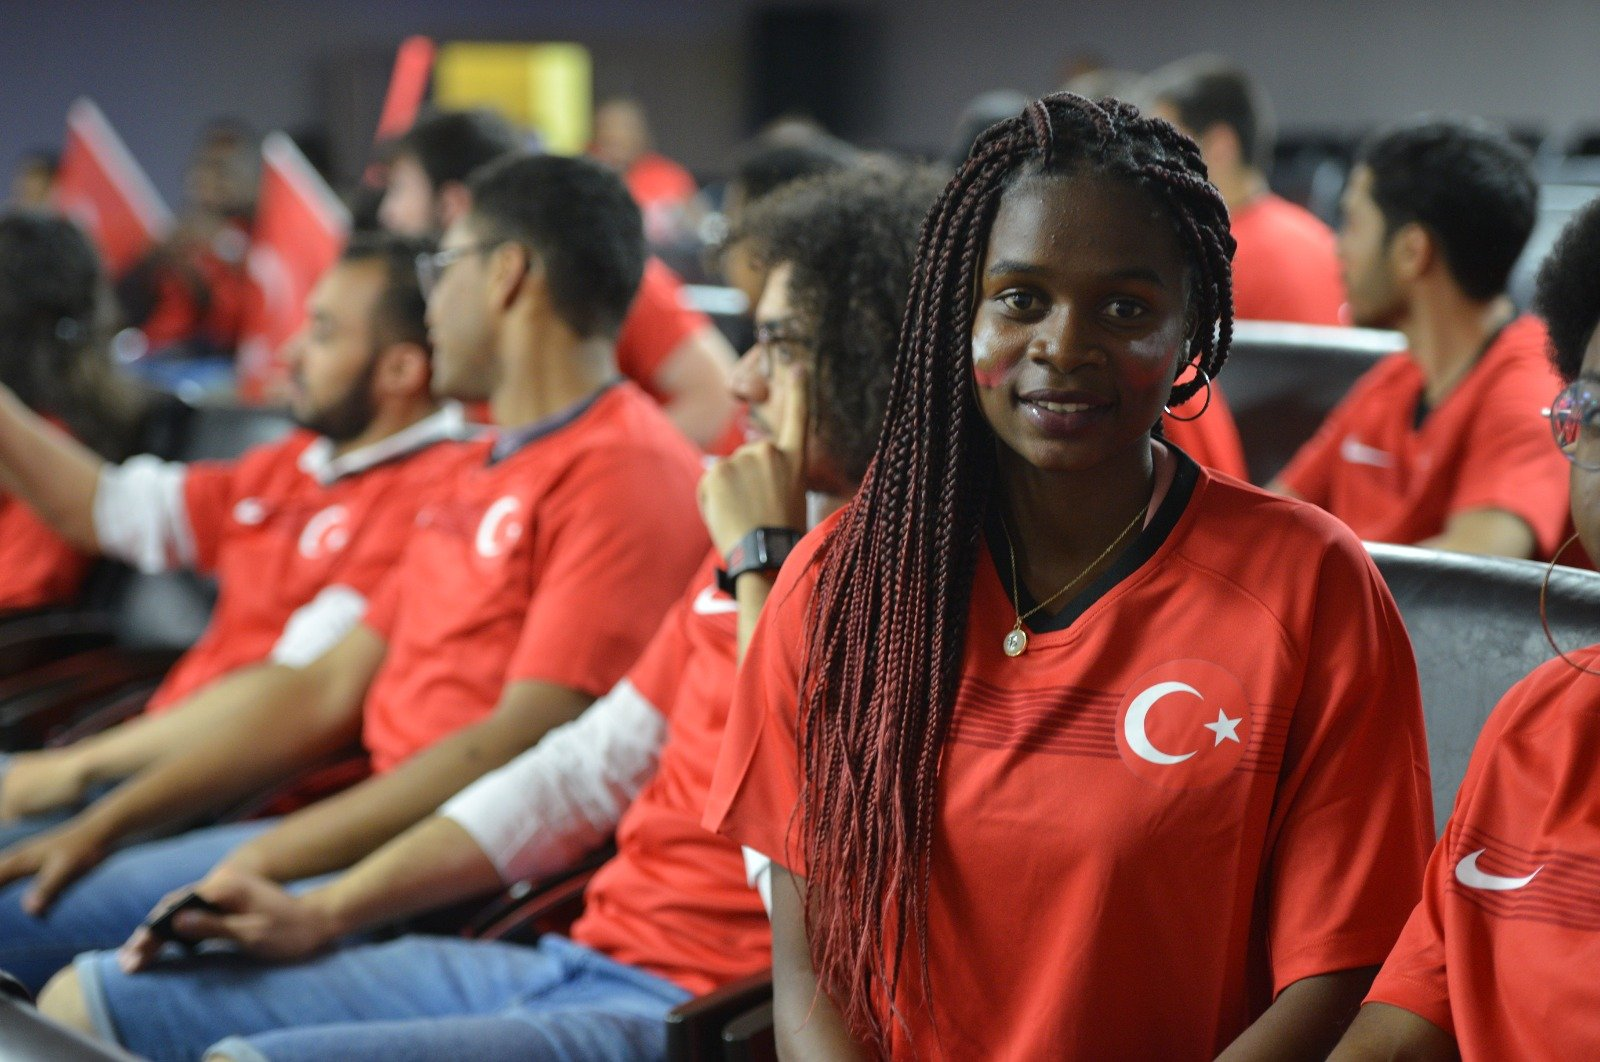 An international student taking courses in Turkey on a scholarship poses during a YTB activity. (Courtesy of YTB)